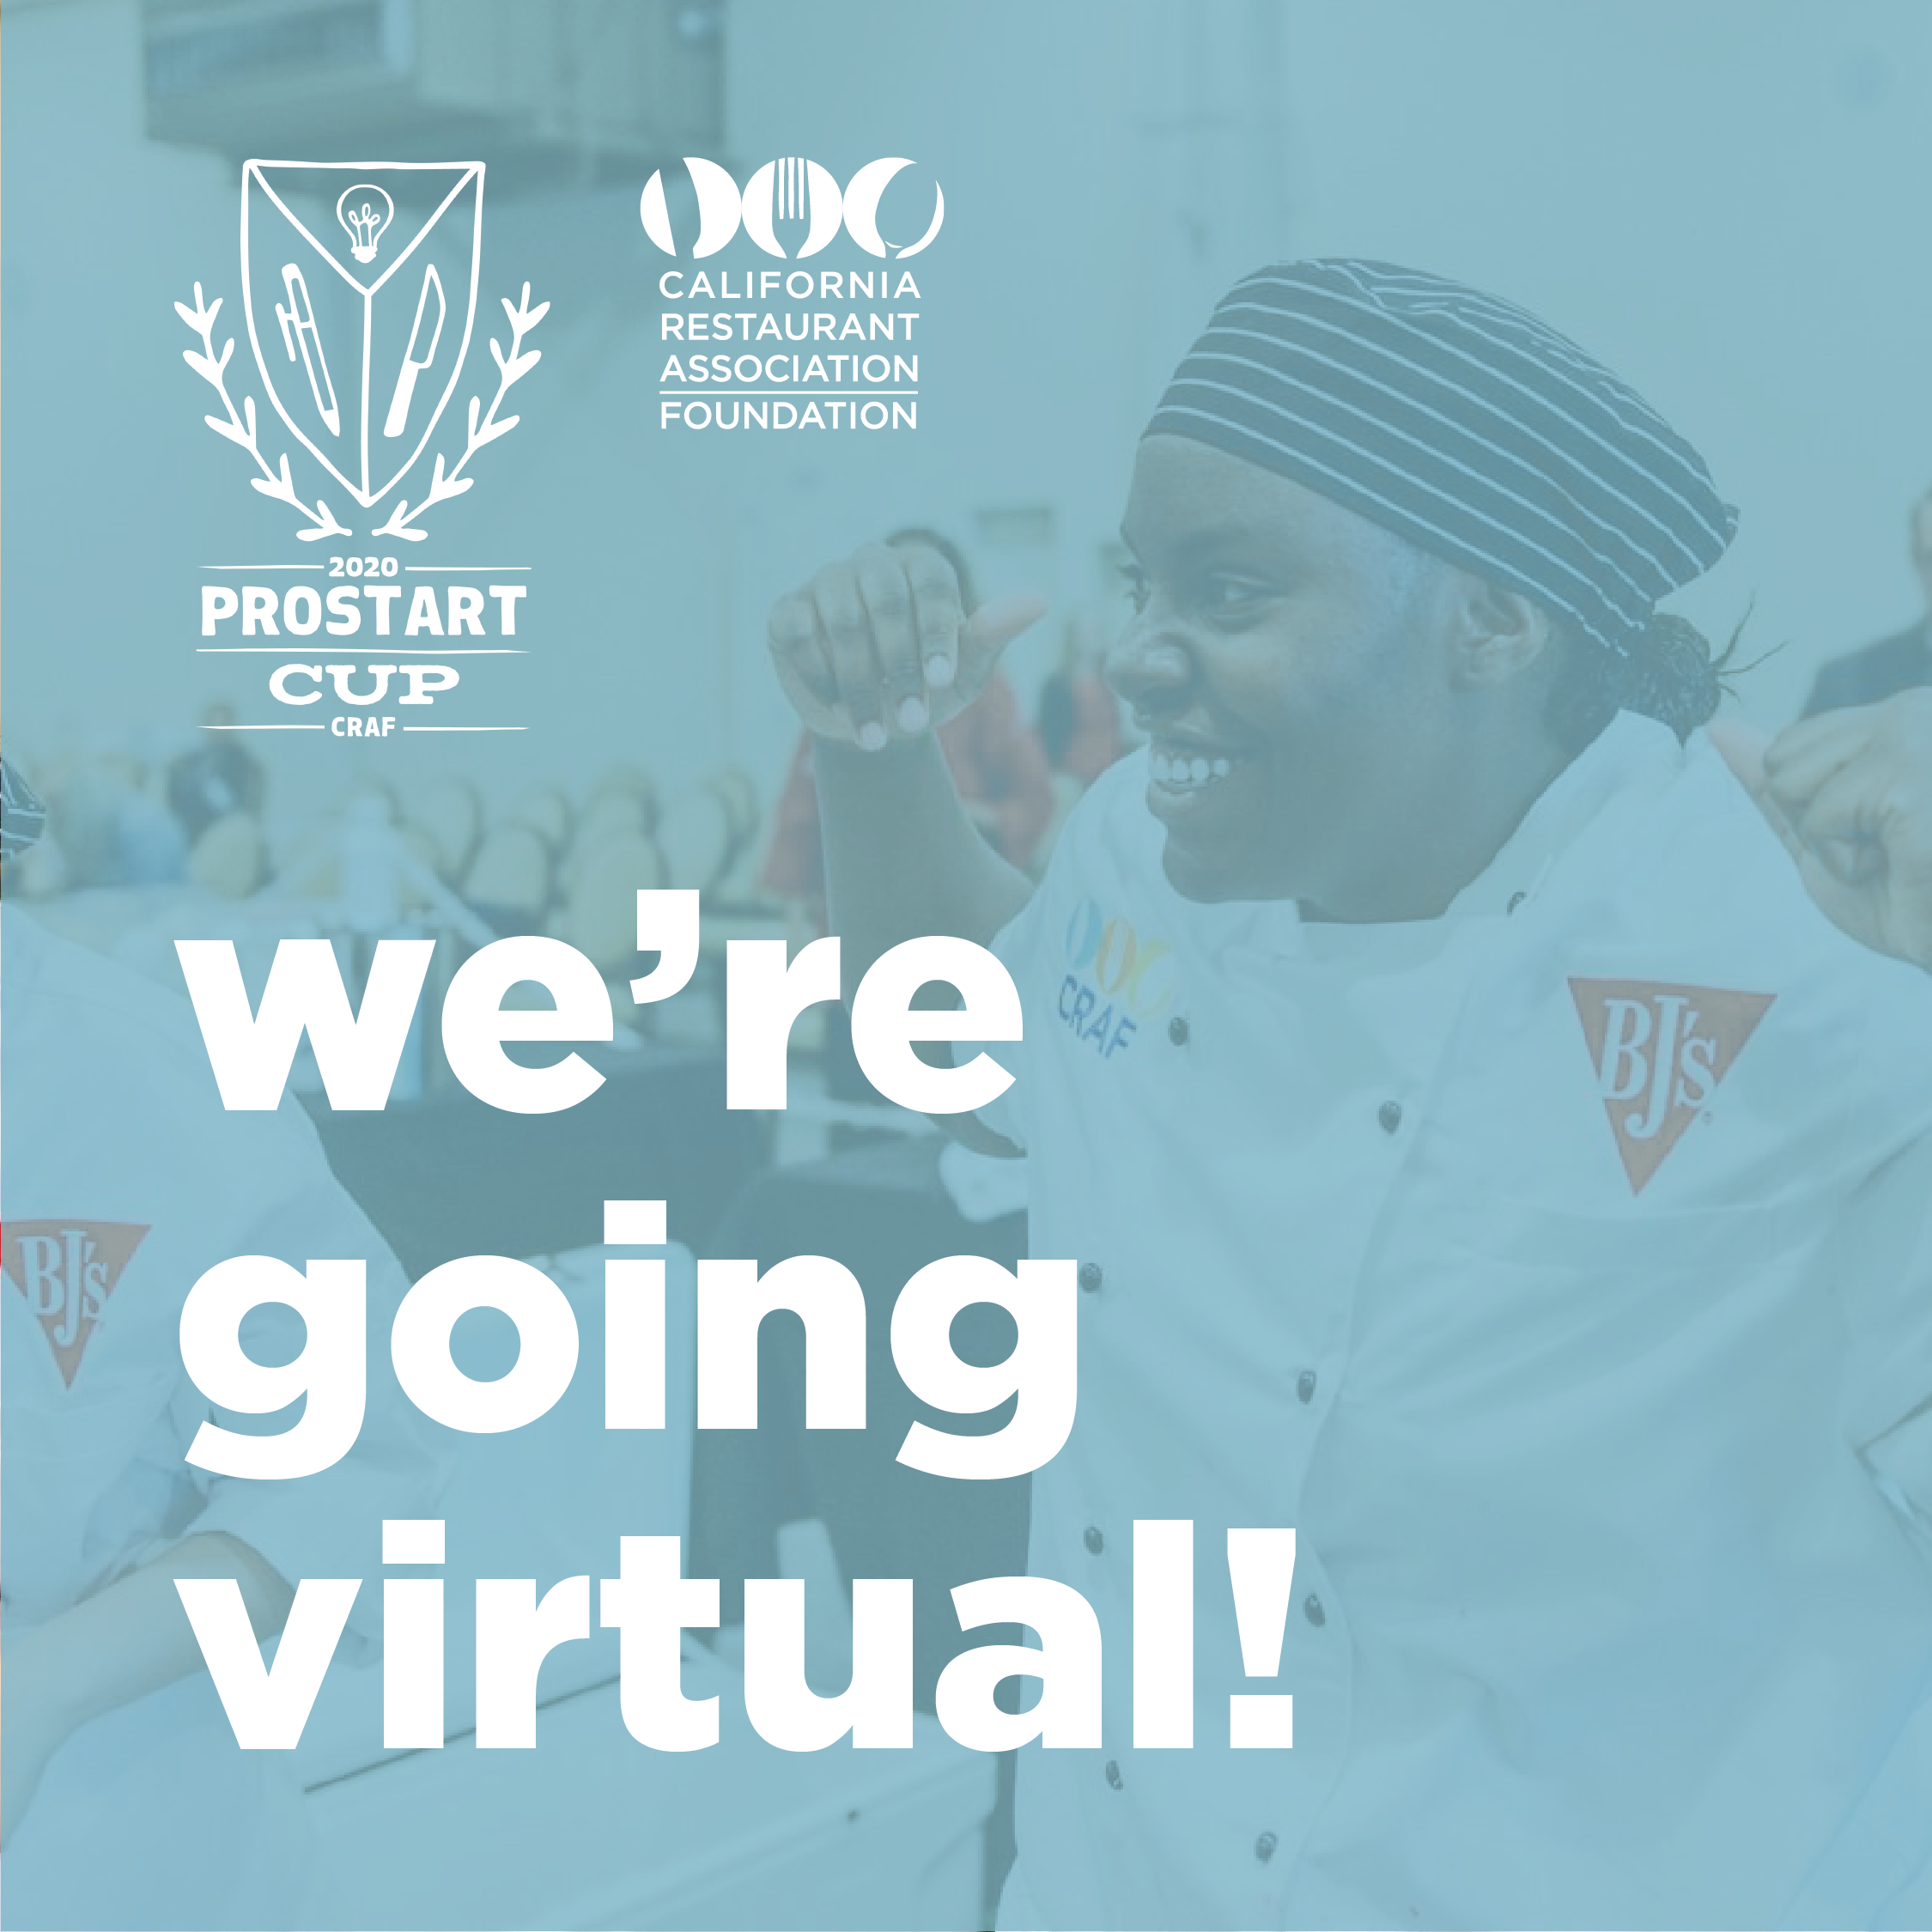 ProStart is going virtual